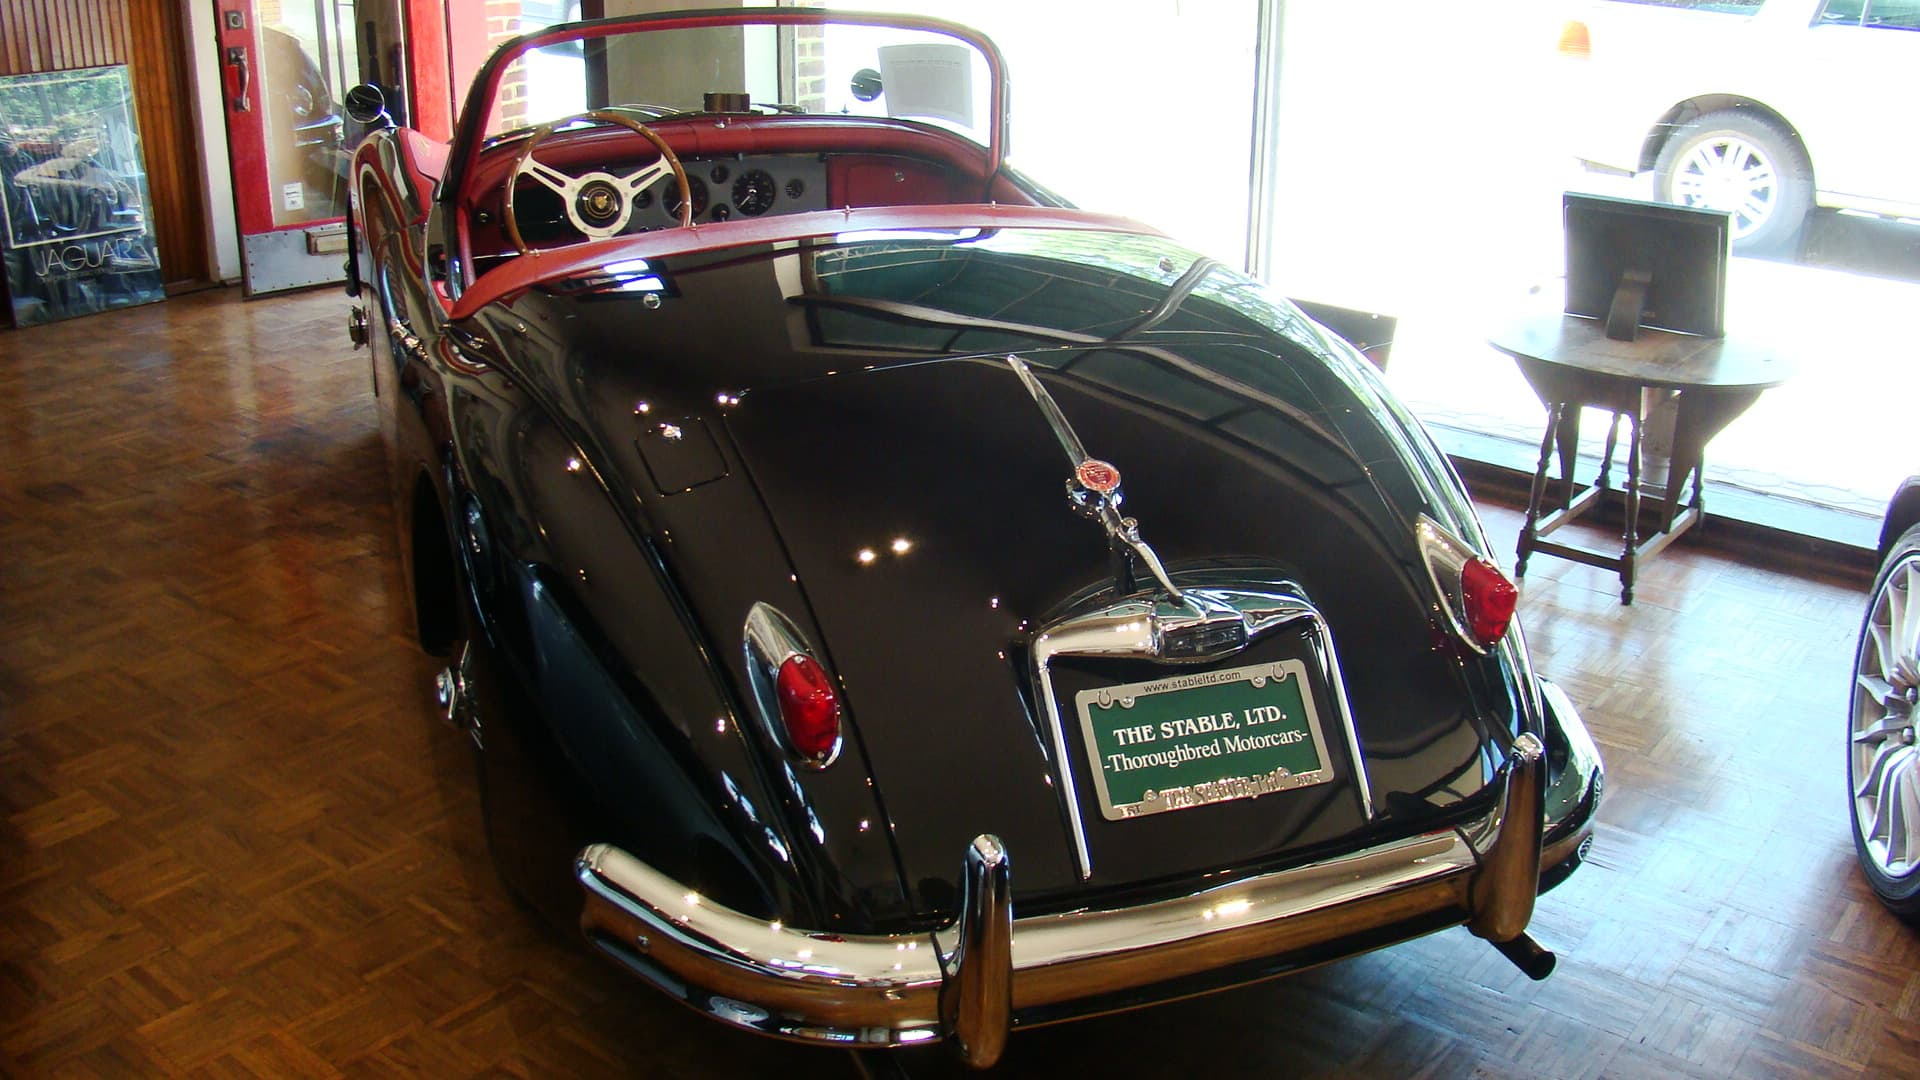 Vintage cars double as both asset class and \'passion\' hobby